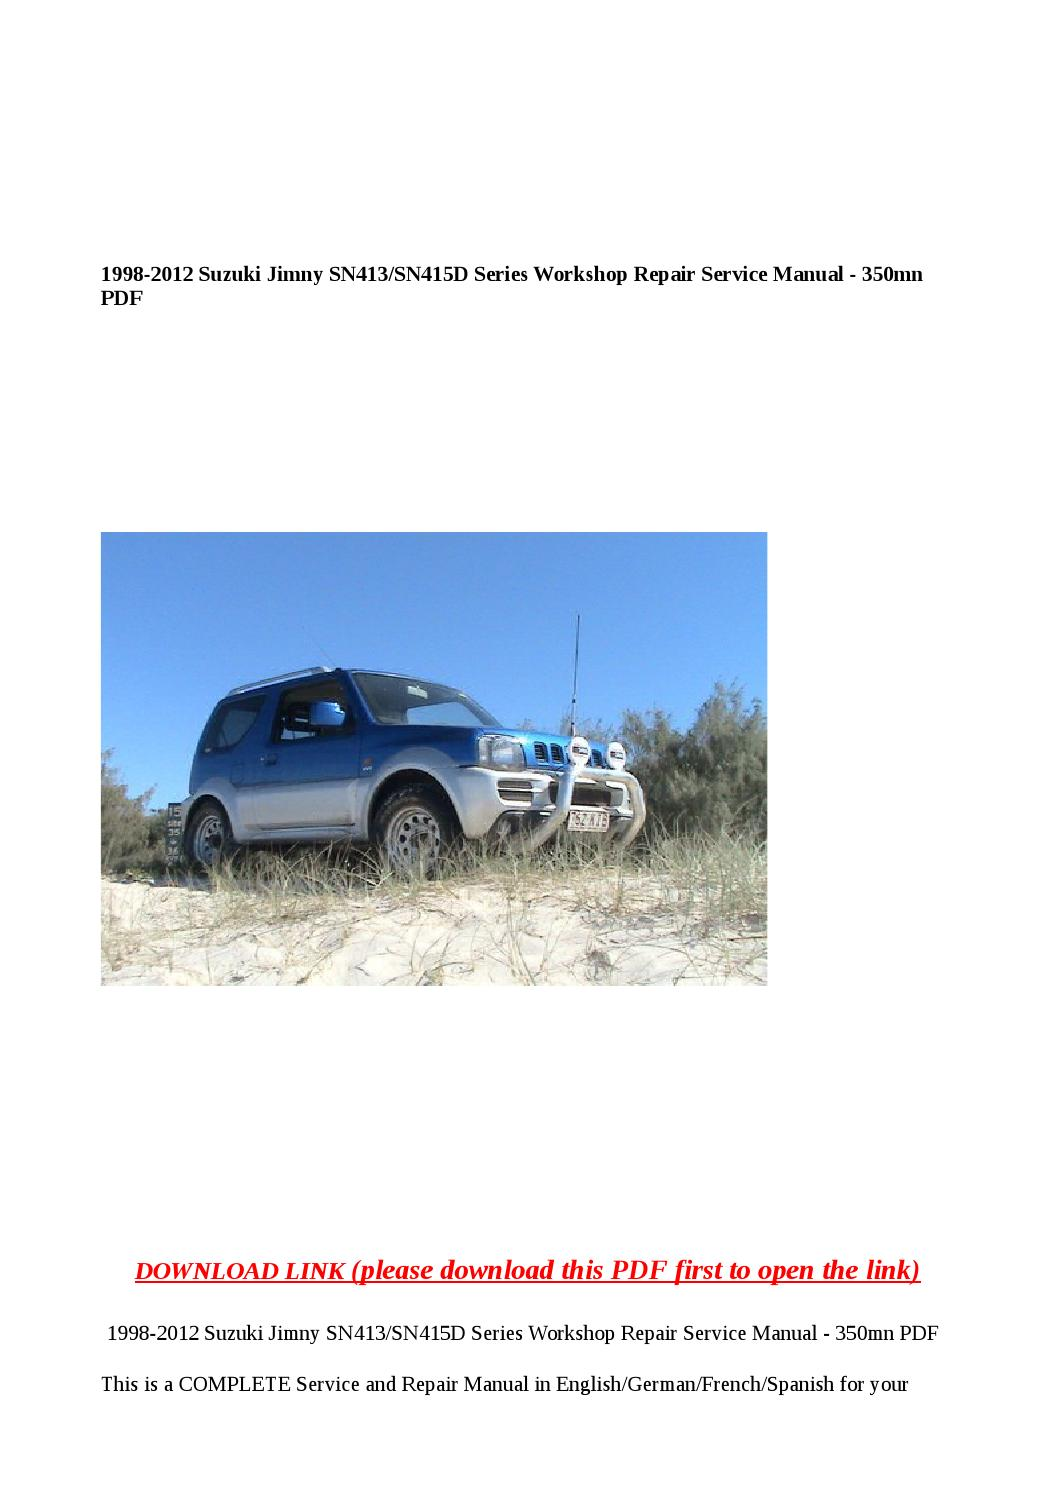 1998 2012 Suzuki Jimny Sn413 Sn415d Series Workshop Repair Service Manual 350mn Pdf By Xiumin